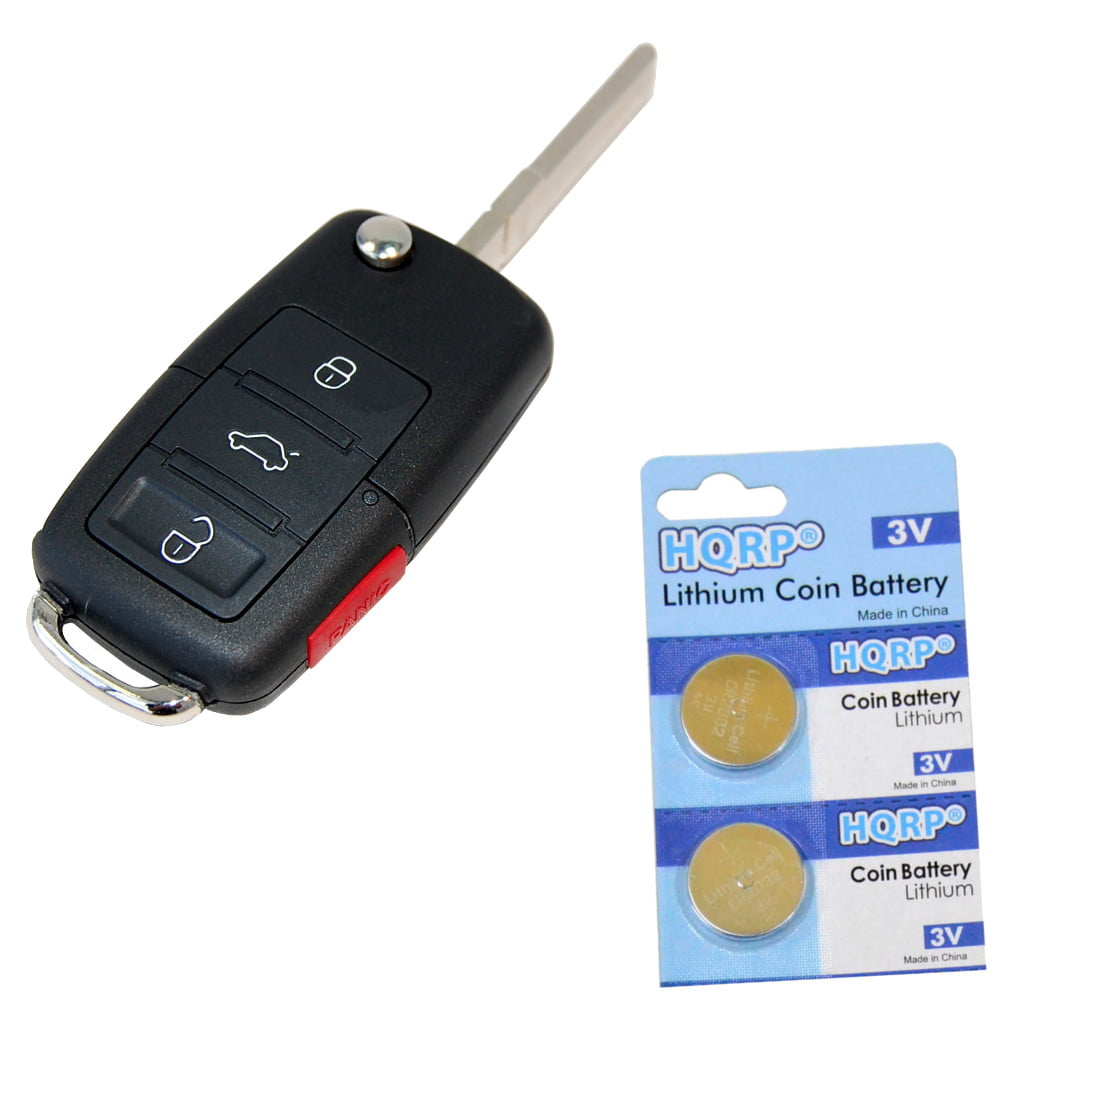 Hqrp Transmitter And Two Batteries For Volkswagen Vw Beetle 2000 2001 2002 2003 2004 2005 2006 2007 2008 2009 00 01 02 03 04 05 06 07 08 09 Key Fob Remote Shell Case Cover Smart Key Fob Coaster Walmart Com Walmart Com